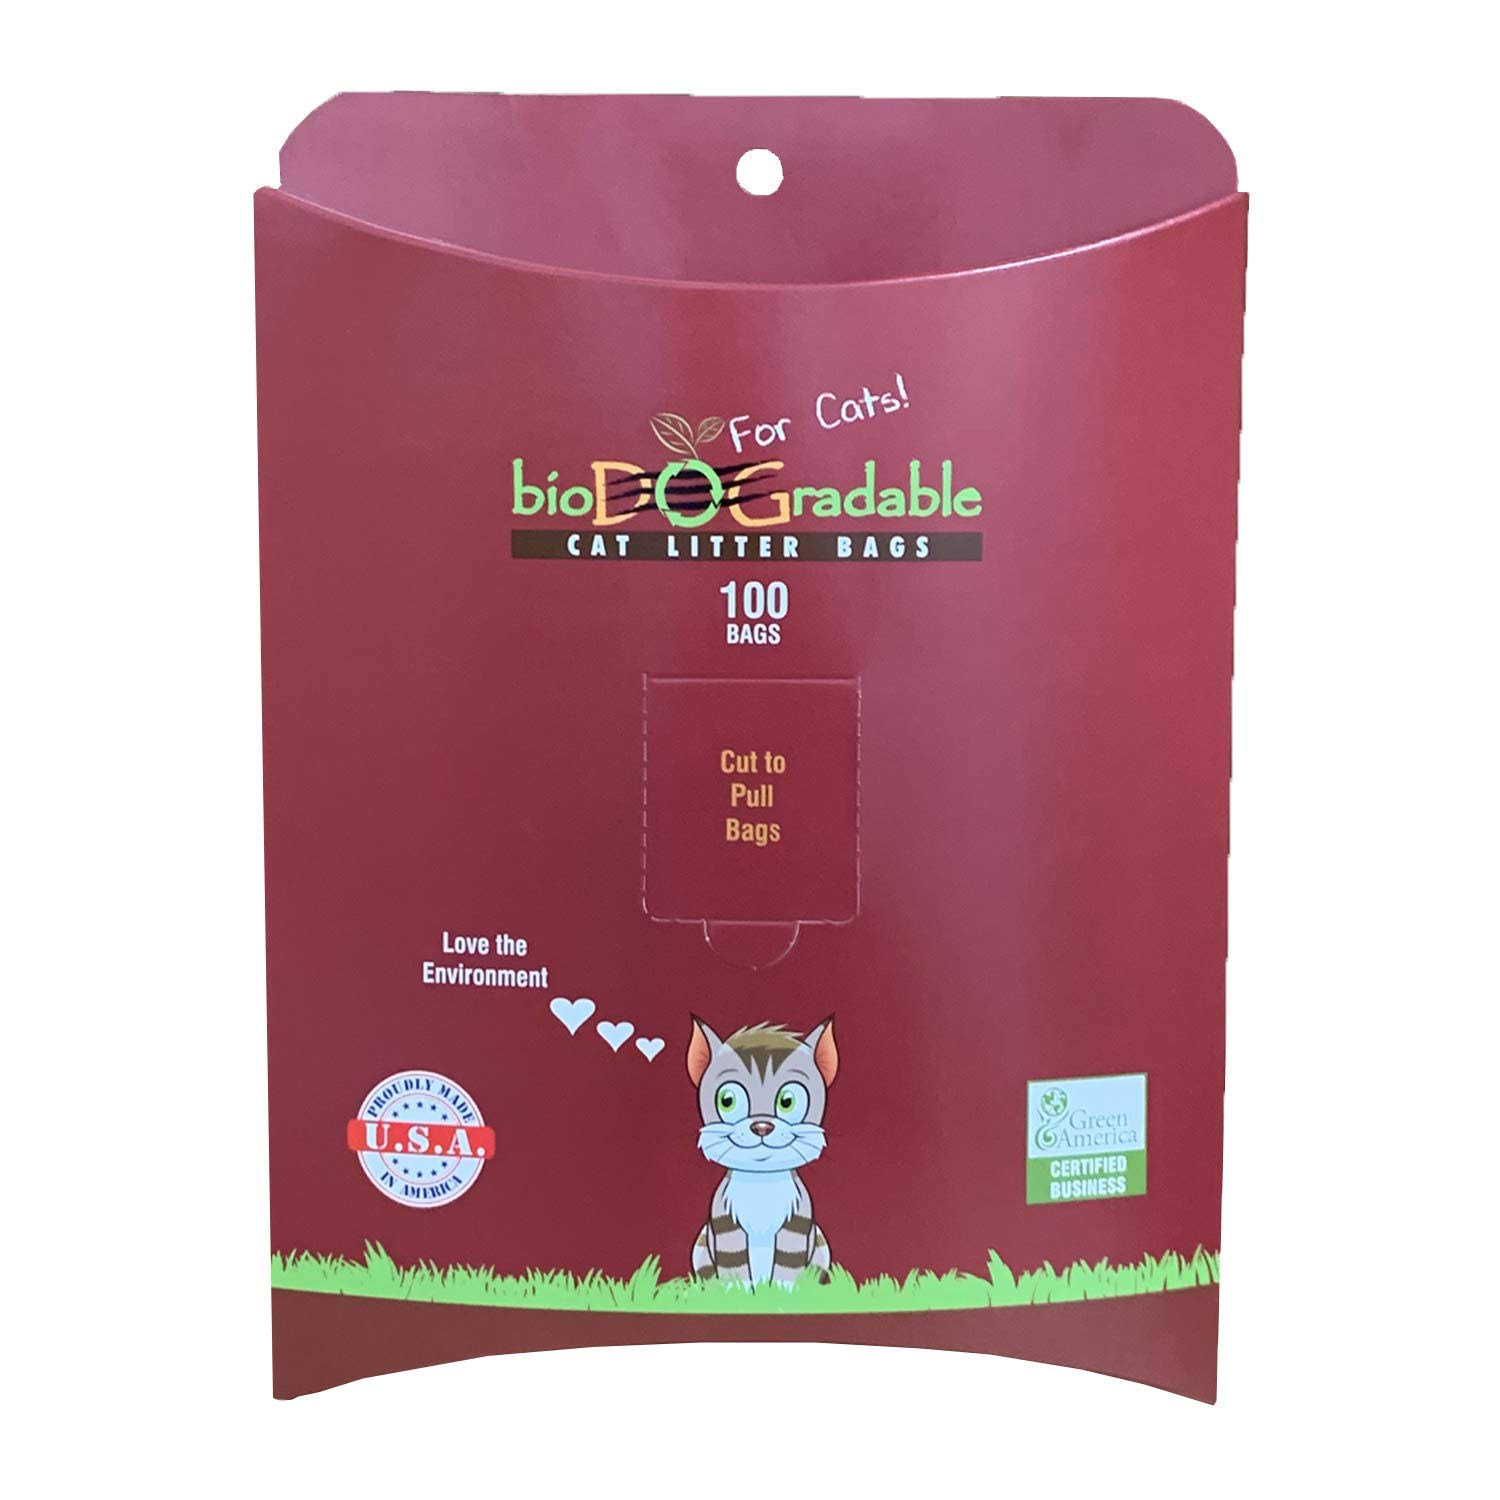 "Biodogradable Cat Litter Bags - 8""x16"", 100ct"